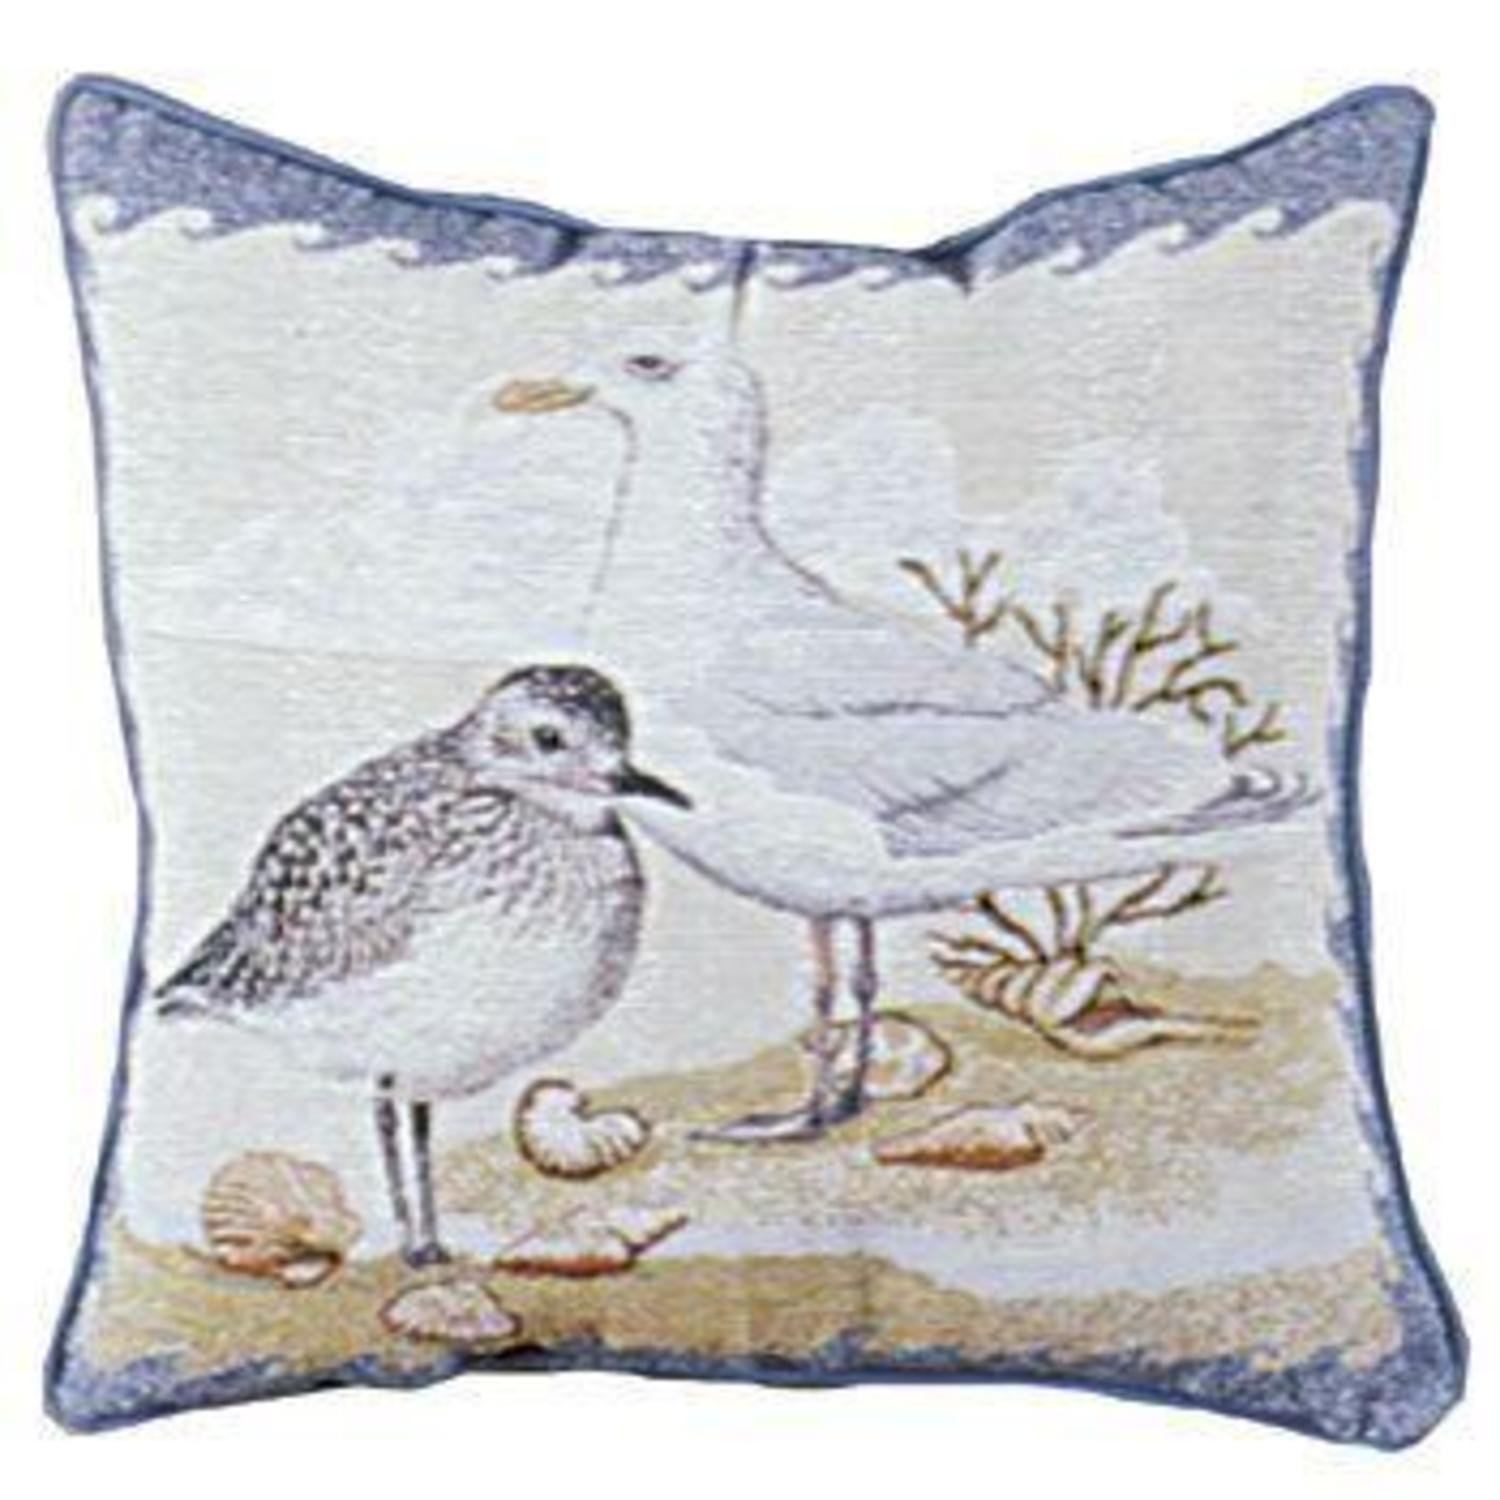 beach diy doodles stitches easy pillow pillows